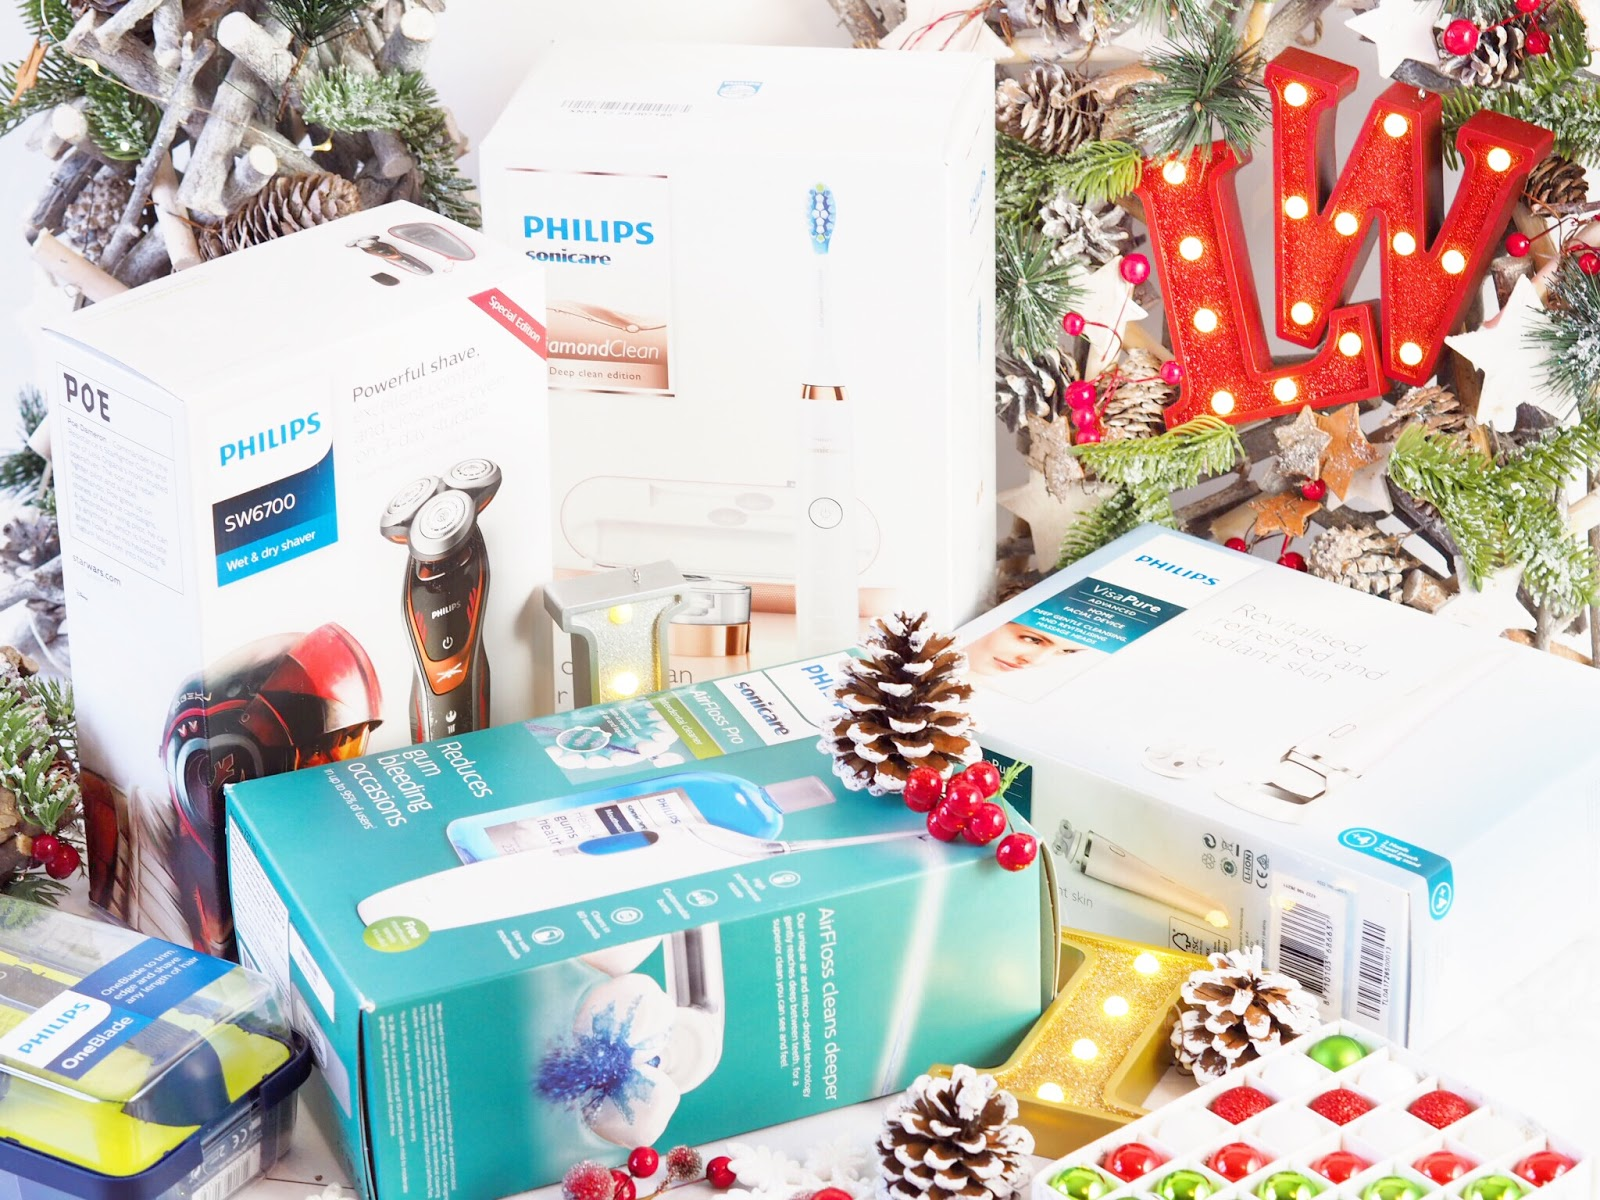 Things To Ask For Christmas.Christmas Gifts For Him Her From Philips Lady Writes